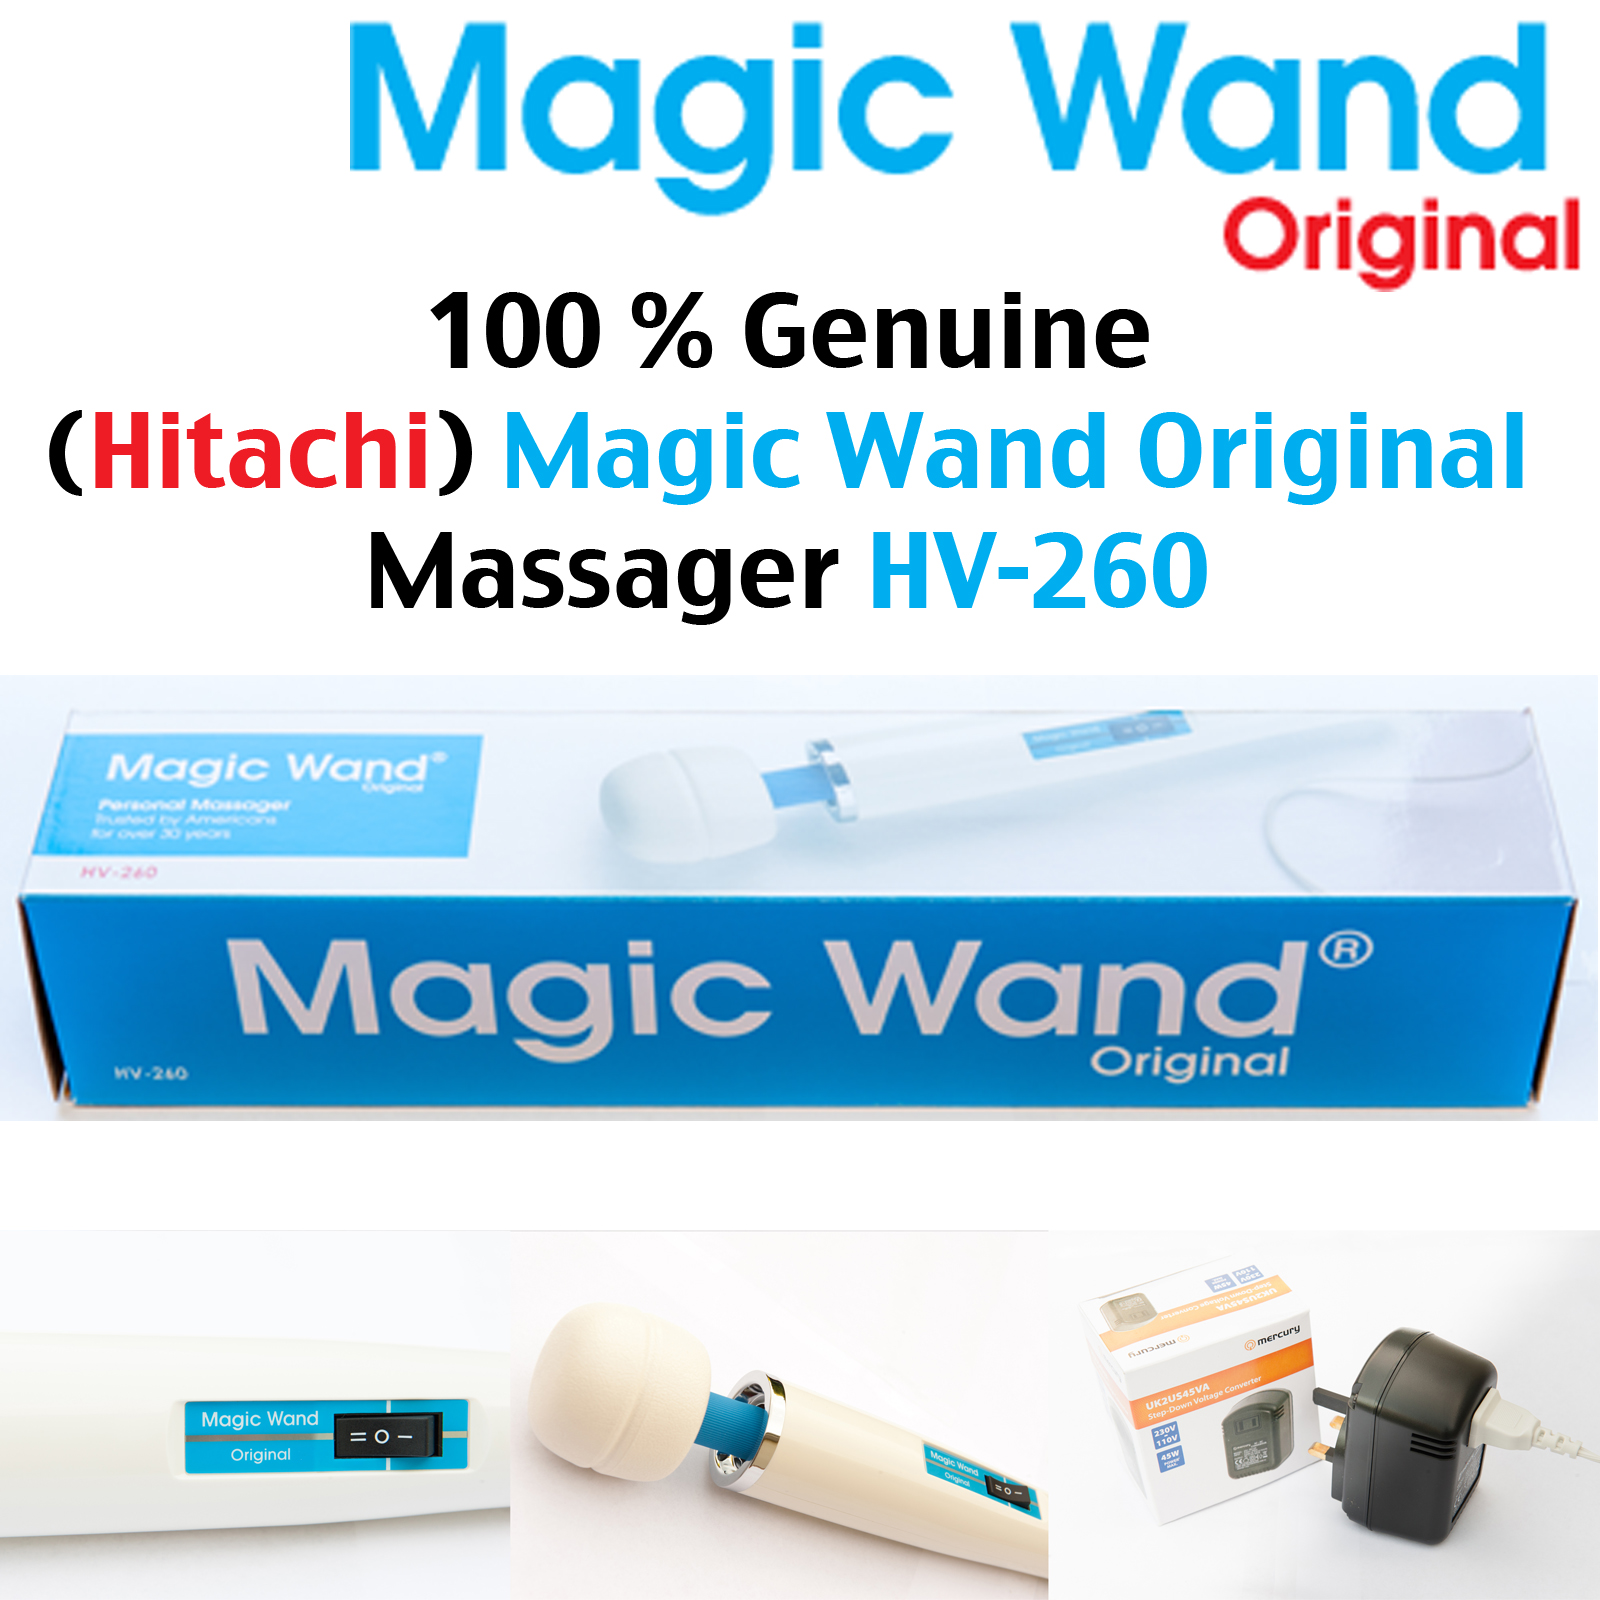 Hitachi Magic Wand Original Massager